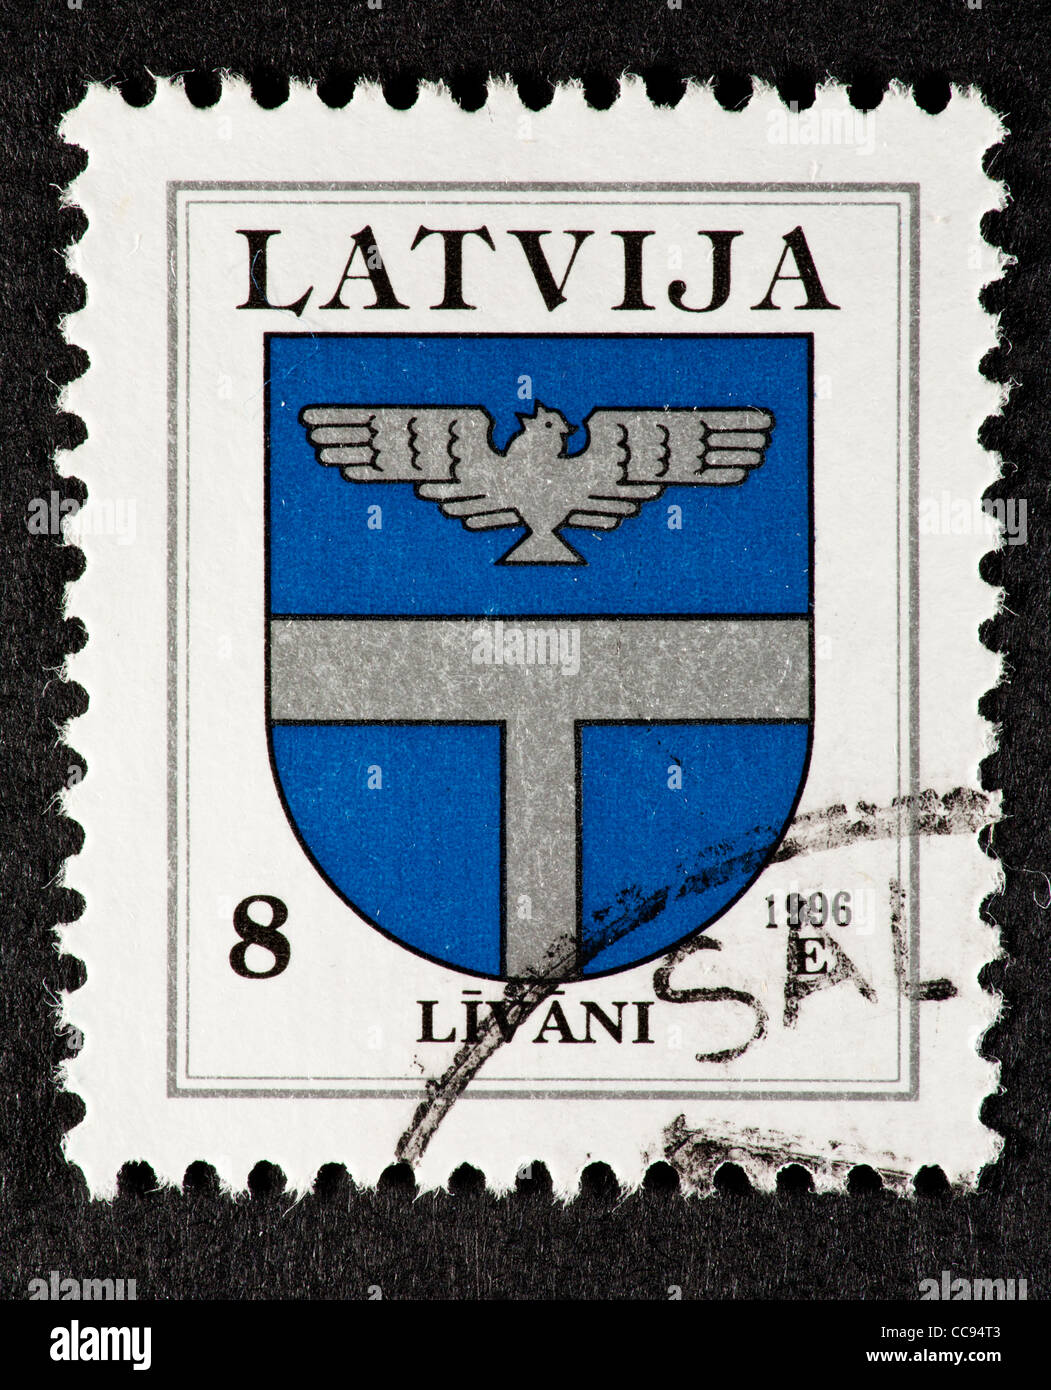 Postage stamp from Latvia depicting the coat of arms of Lavani. - Stock Image